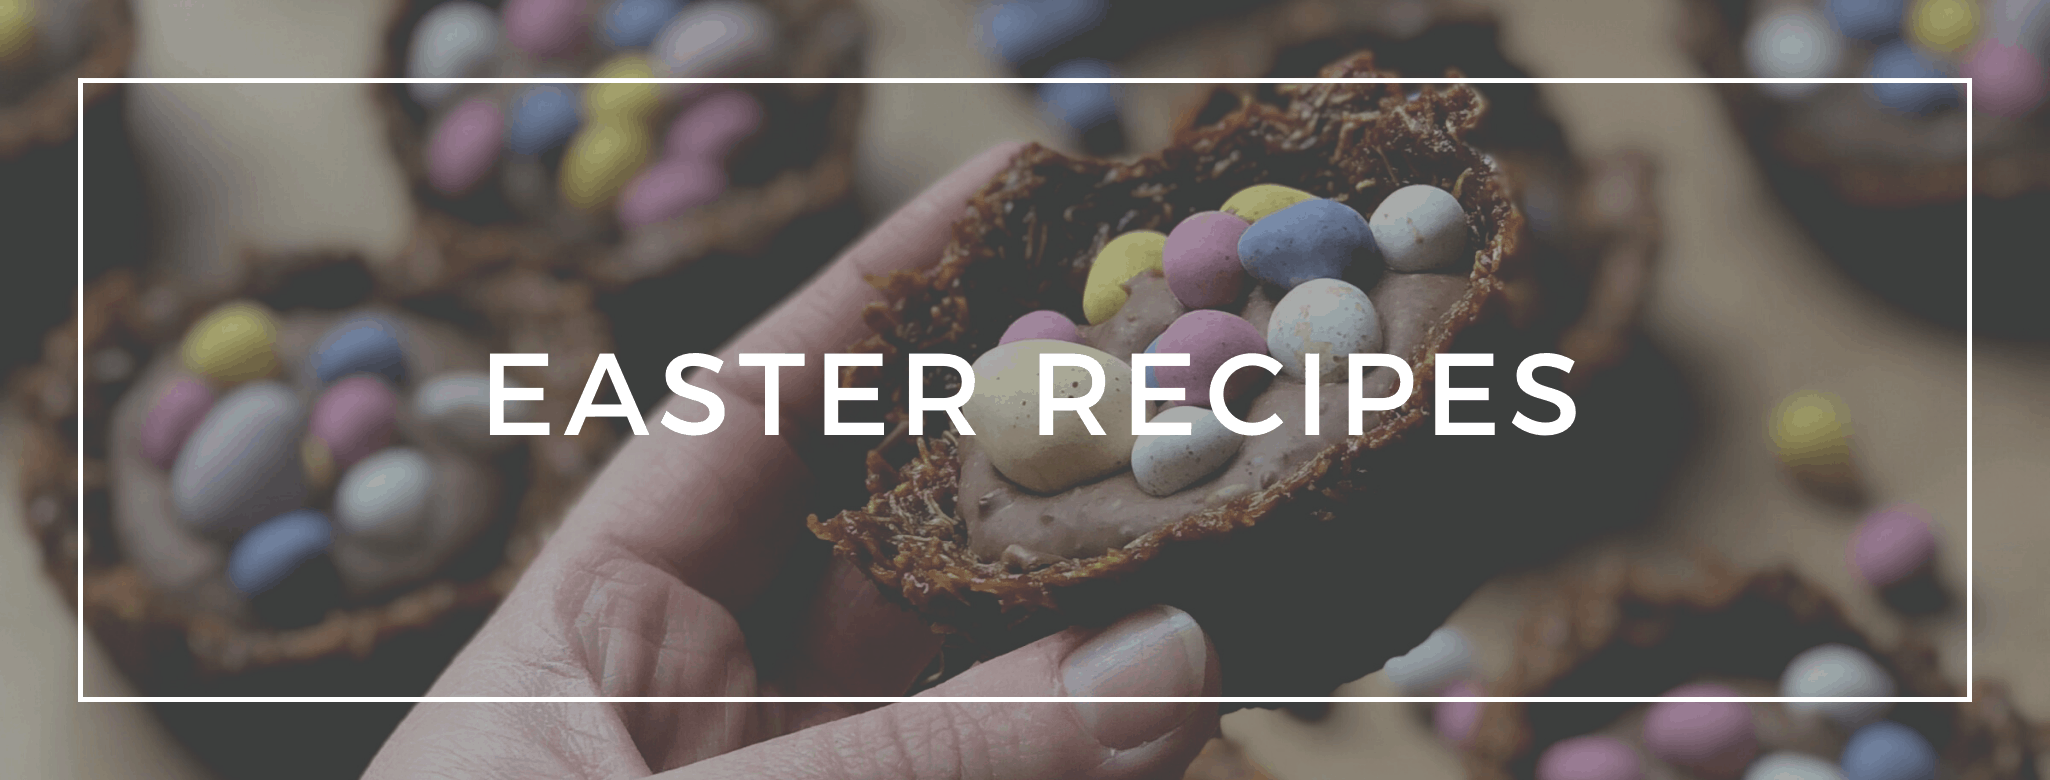 Easter Recipe Widget